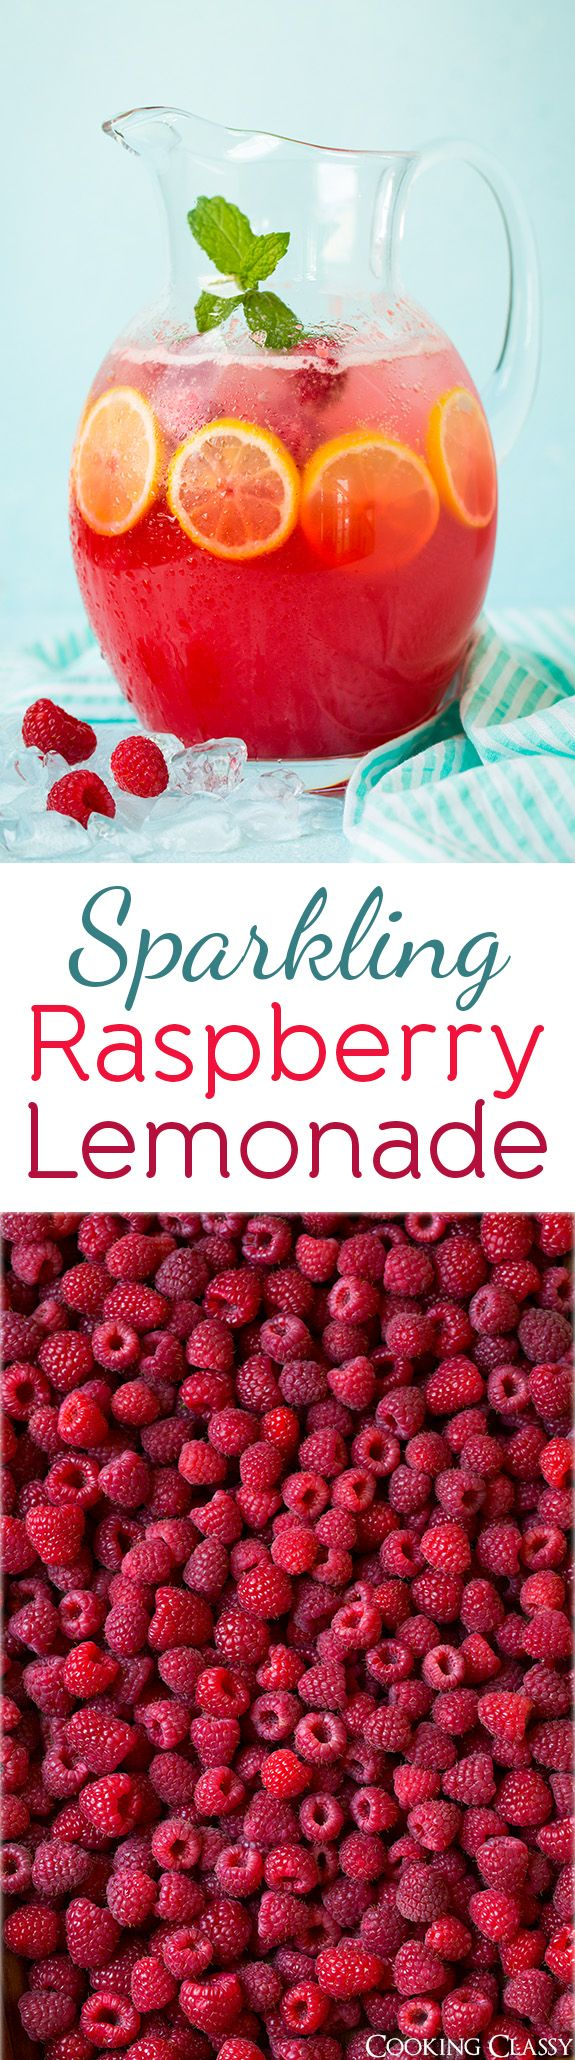 Sparkling Raspberry Lemonade - the ultimate refreshing summer drink! Perfectly bubbly and bright. Everyone loves this!